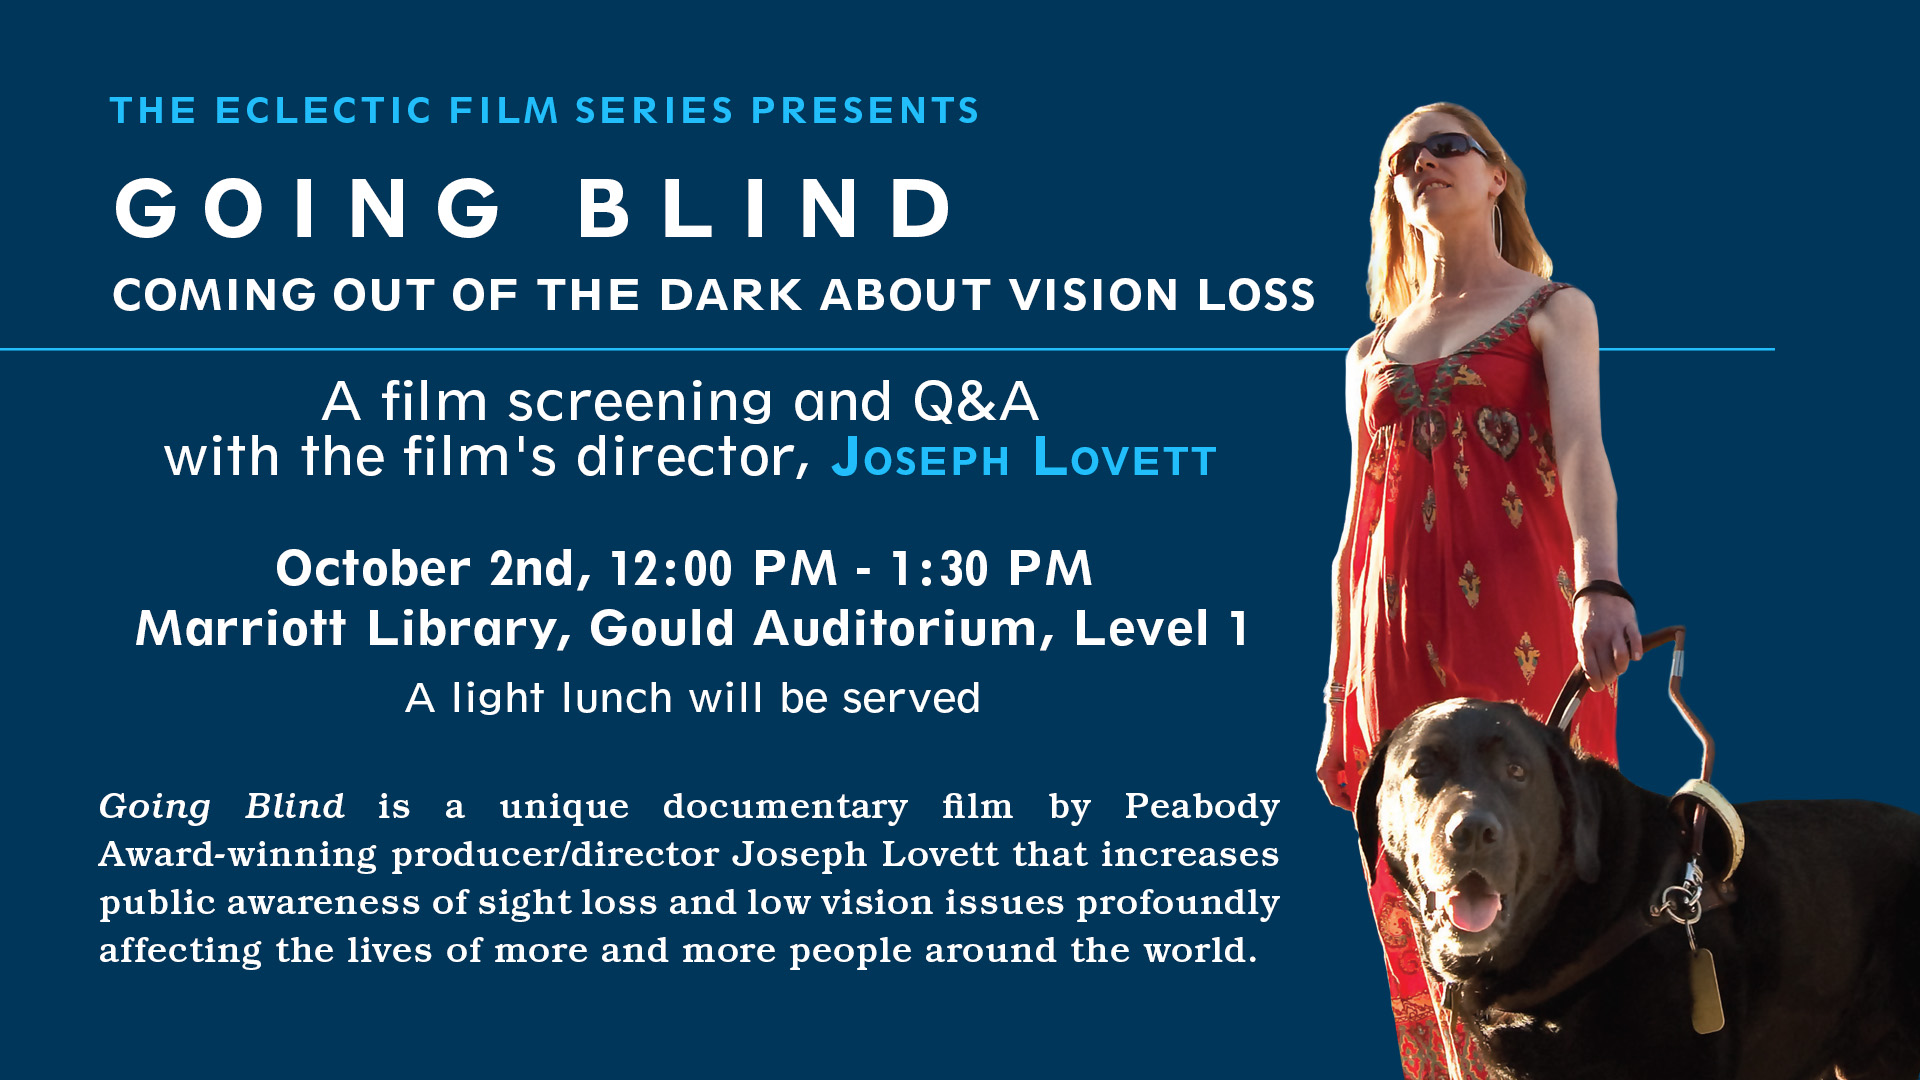 Going Blind film screening & Q & A with film's director. October 2nd. noon - 1:30pm. Marriott Library Gould auditorium. Light lunch served.